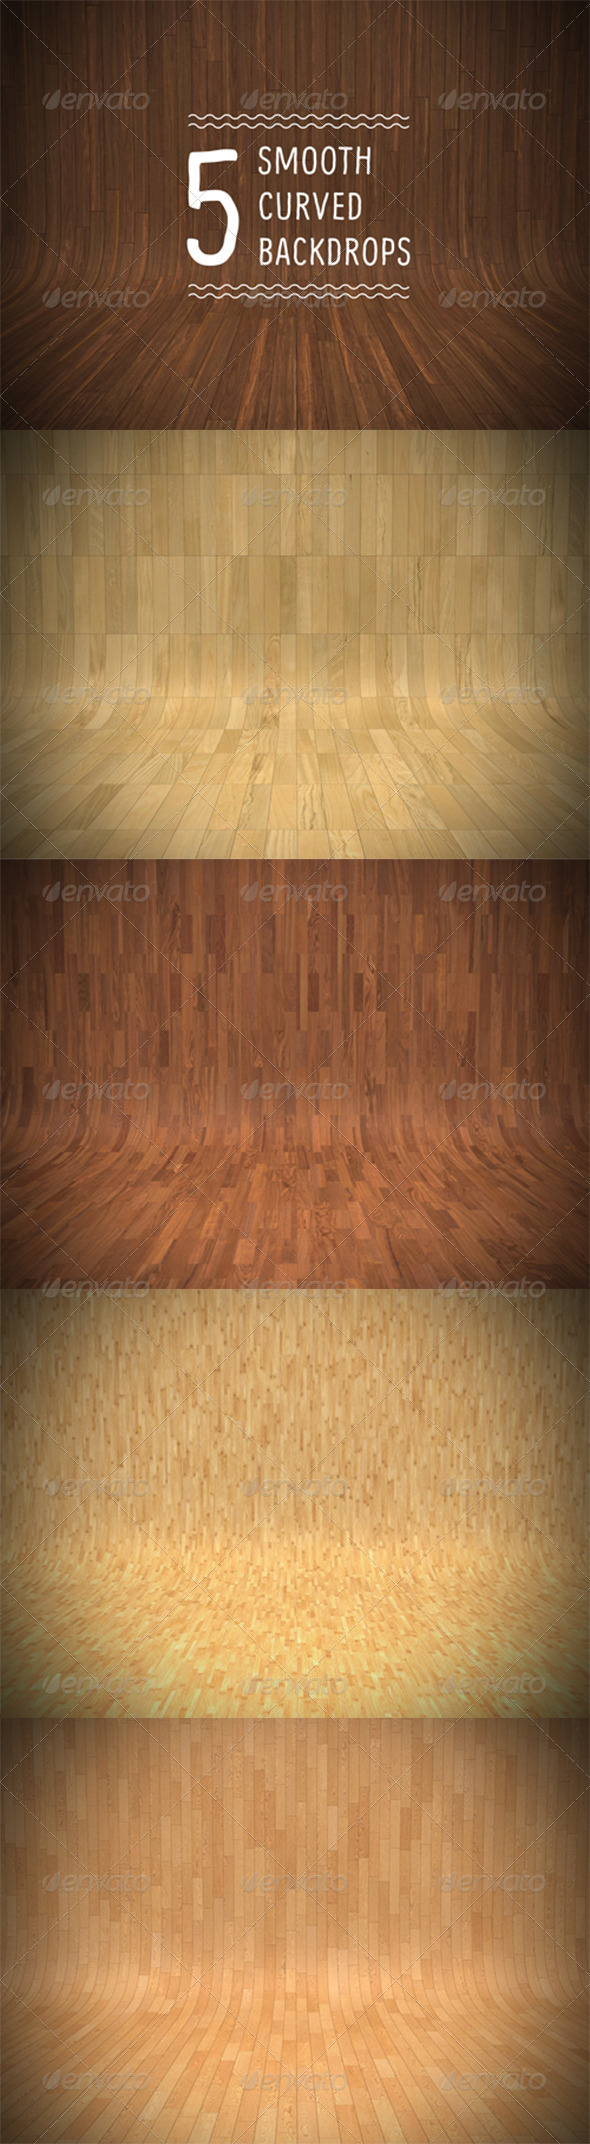 Smooth Curved Wooden Backdrops - Product Mock-Ups Graphics